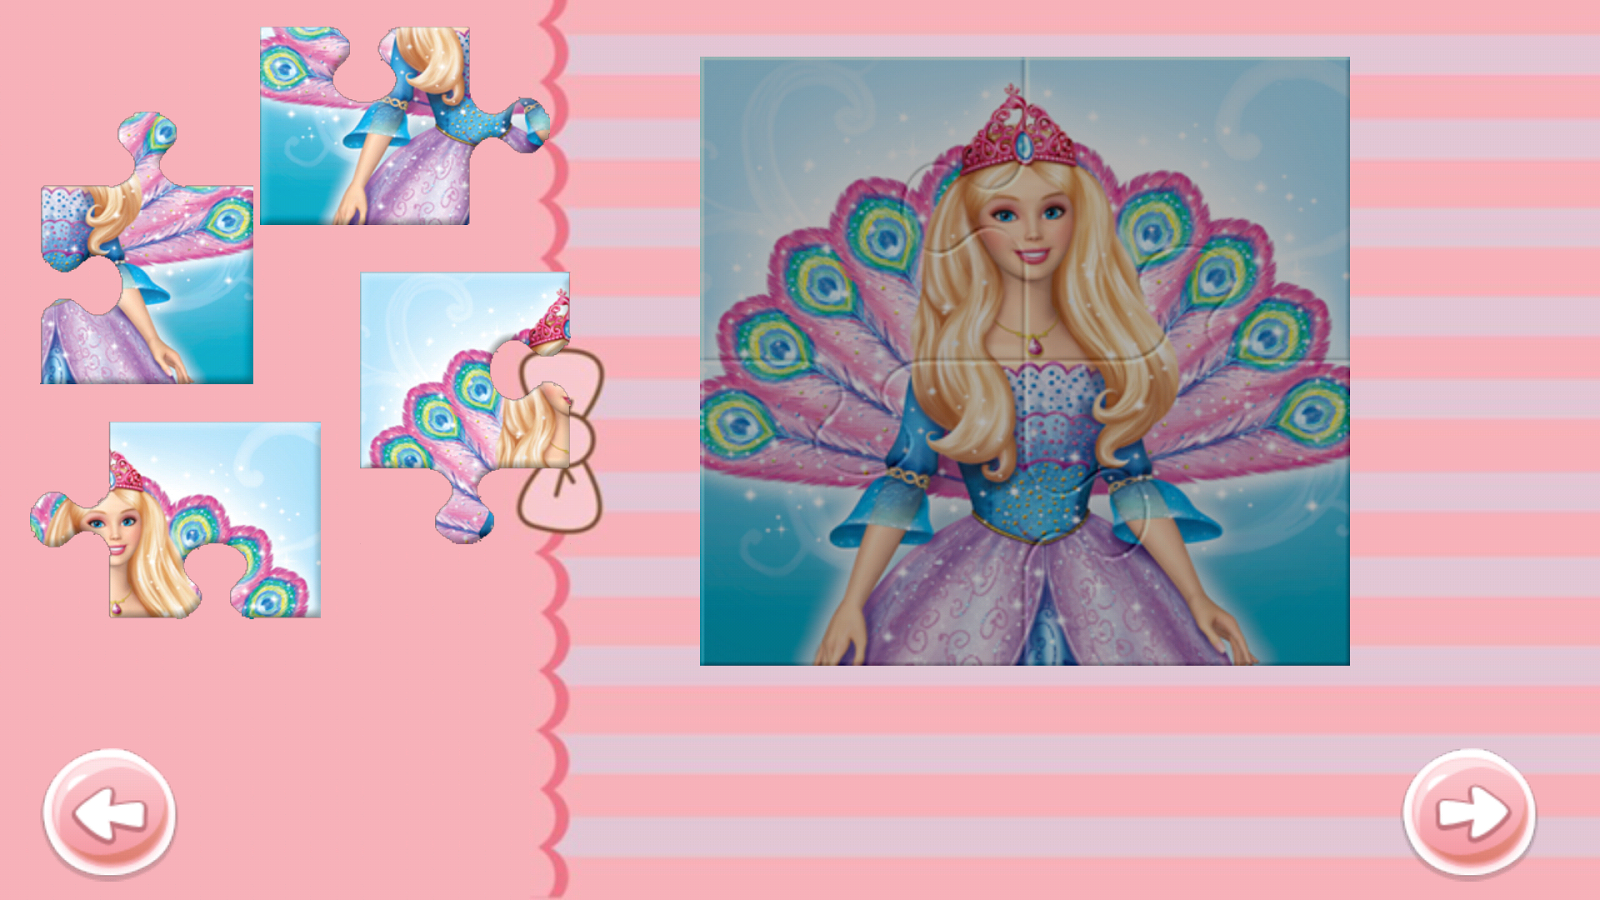 Princess-Puzzle-For-Toddlers-2 22